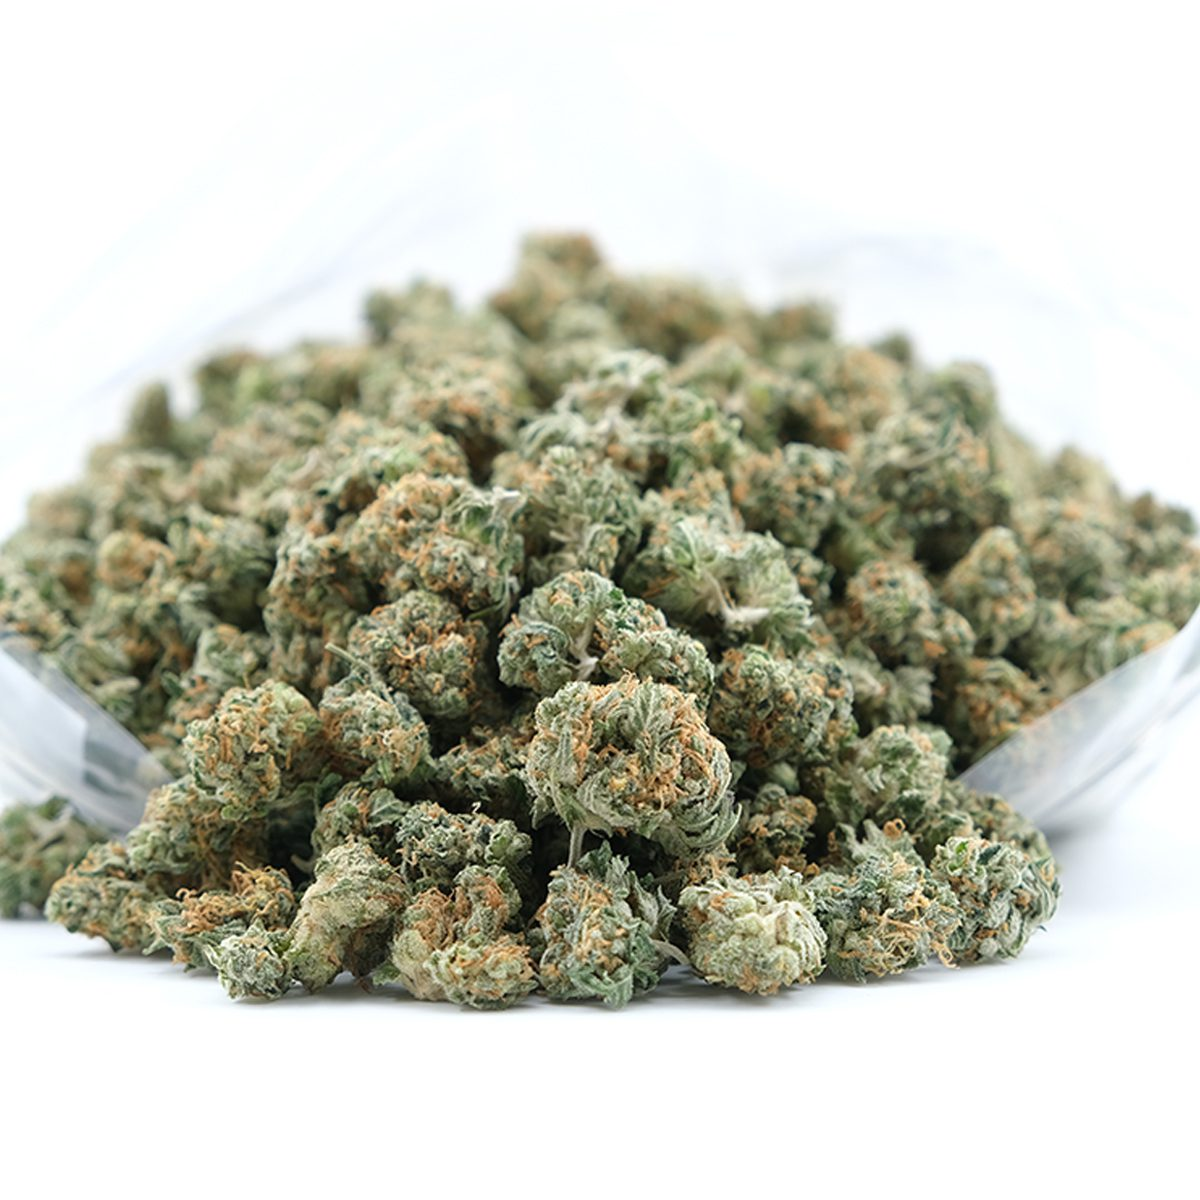 Gas Mask Smalls Ounce Deal